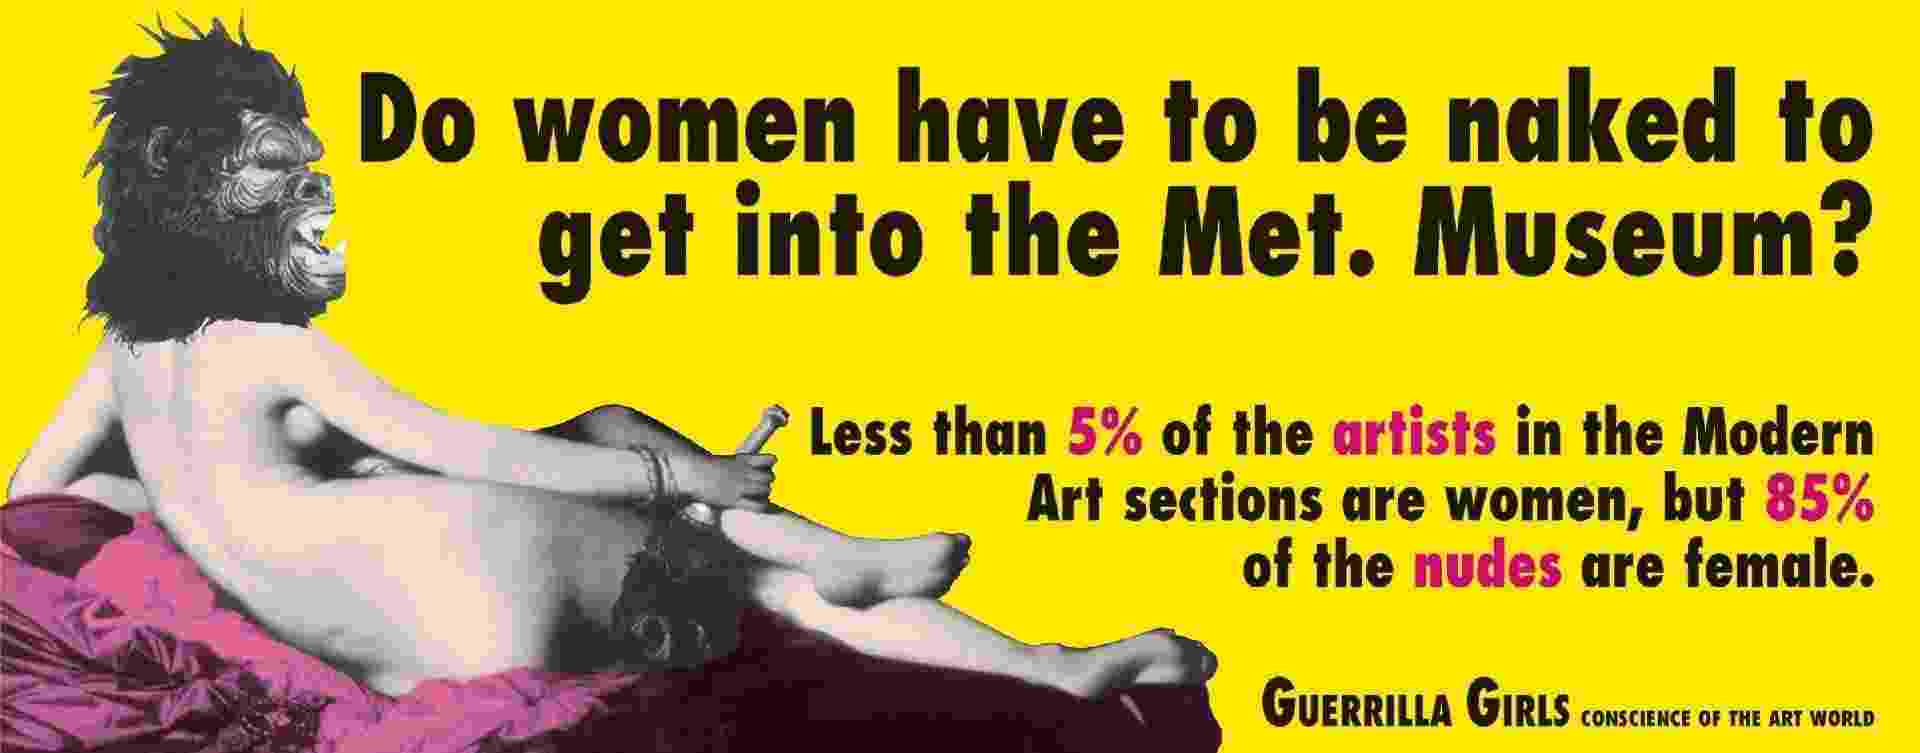 "Guerrilla Girls, ""As mulheres precisam estar nuas para entrar no Metropolitan Museum?"" (1989) - Guerrilla Girls"